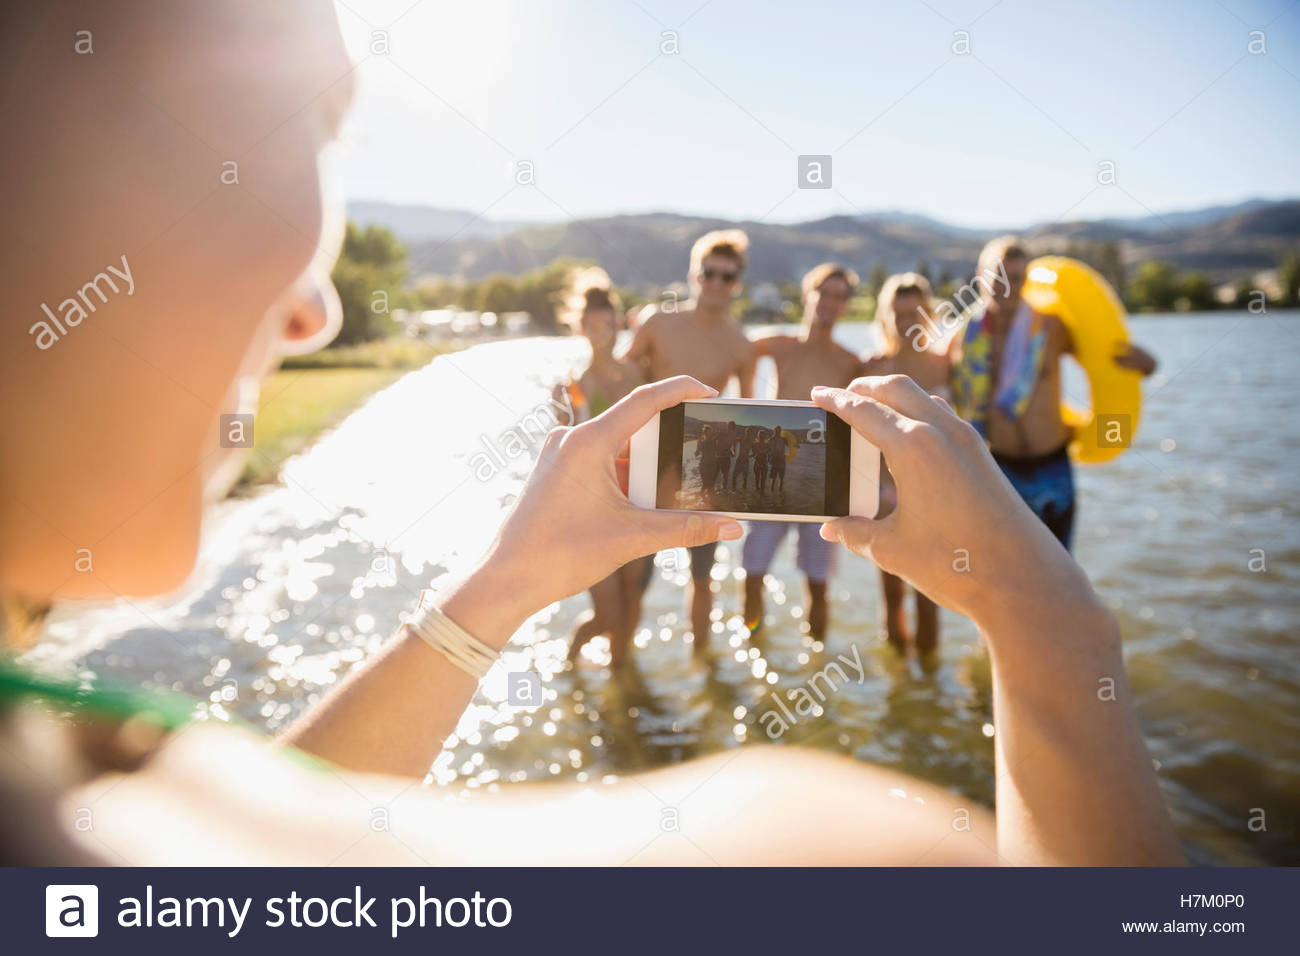 Young woman with camera phone photographing friends at sunny summer lake - Stock Image